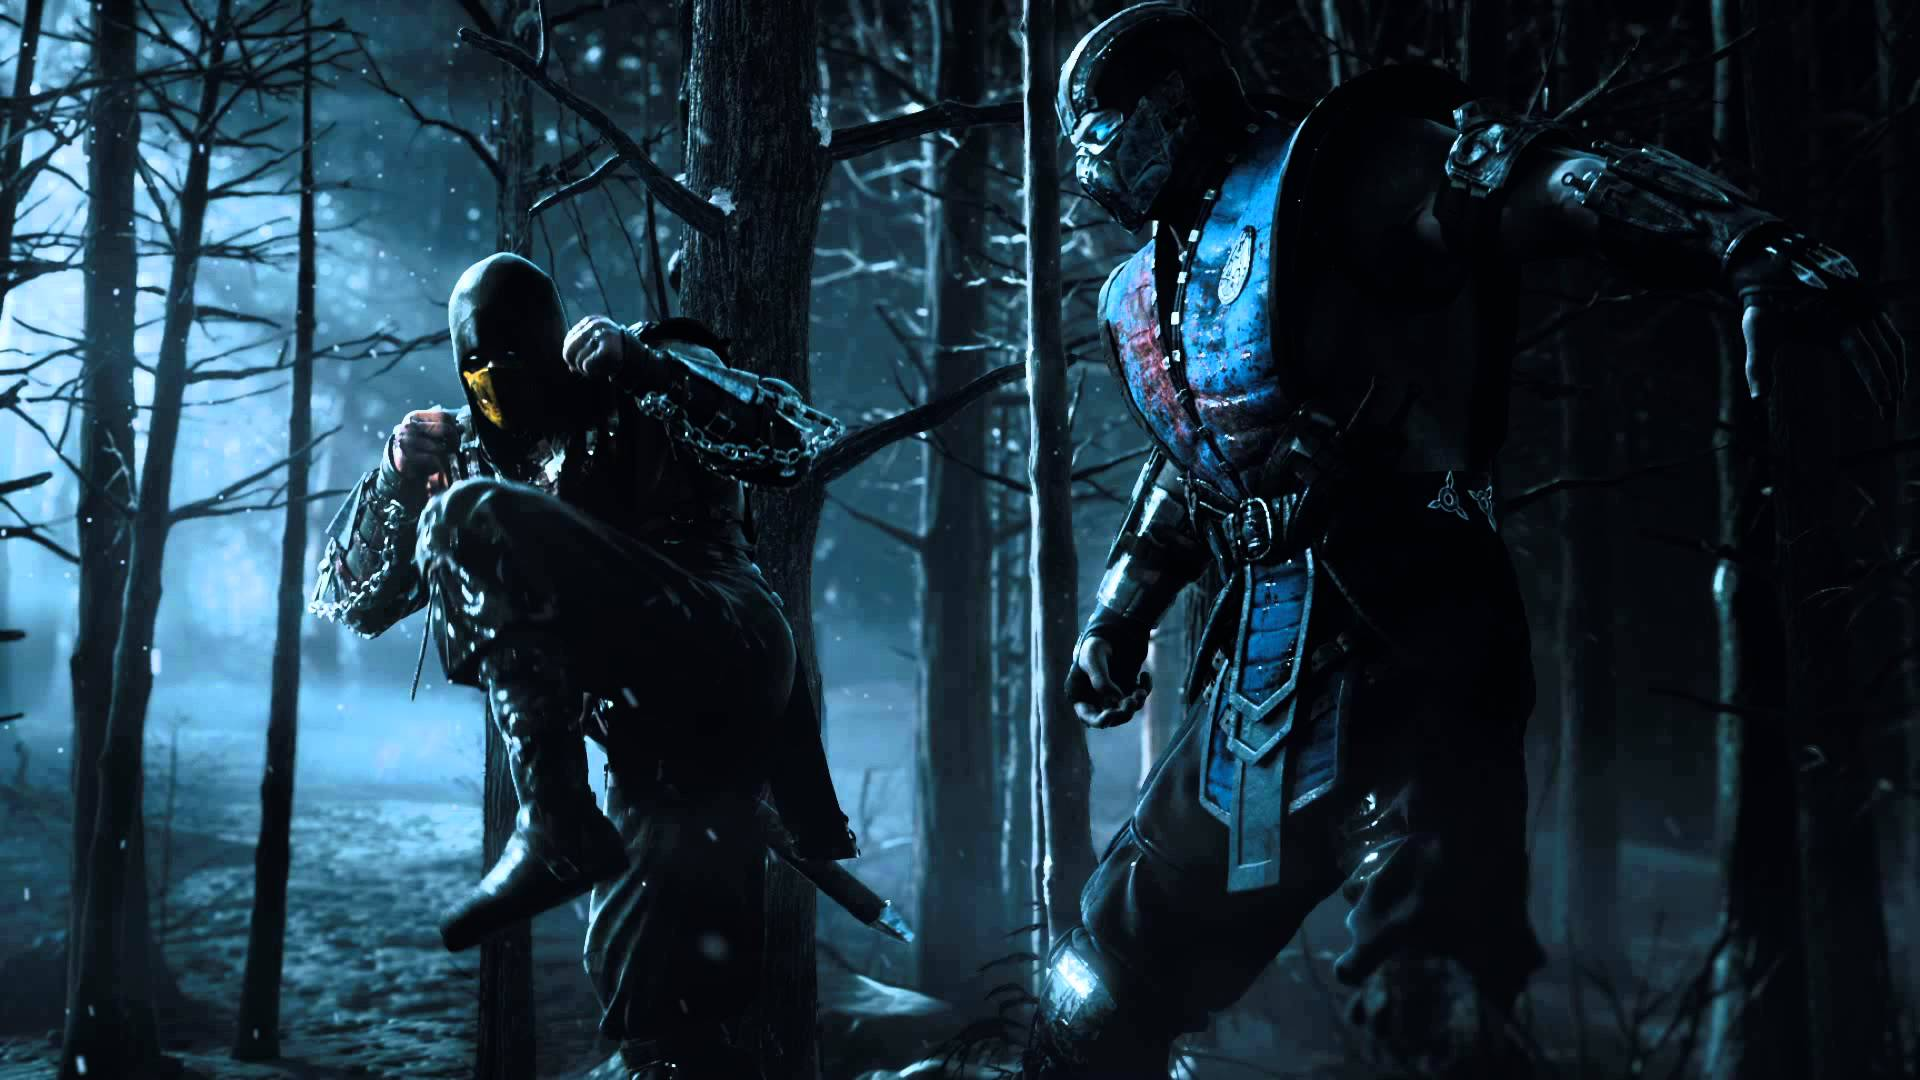 Free Download Mortal Kombat X Wallpaper 12 1920x1080 For Your